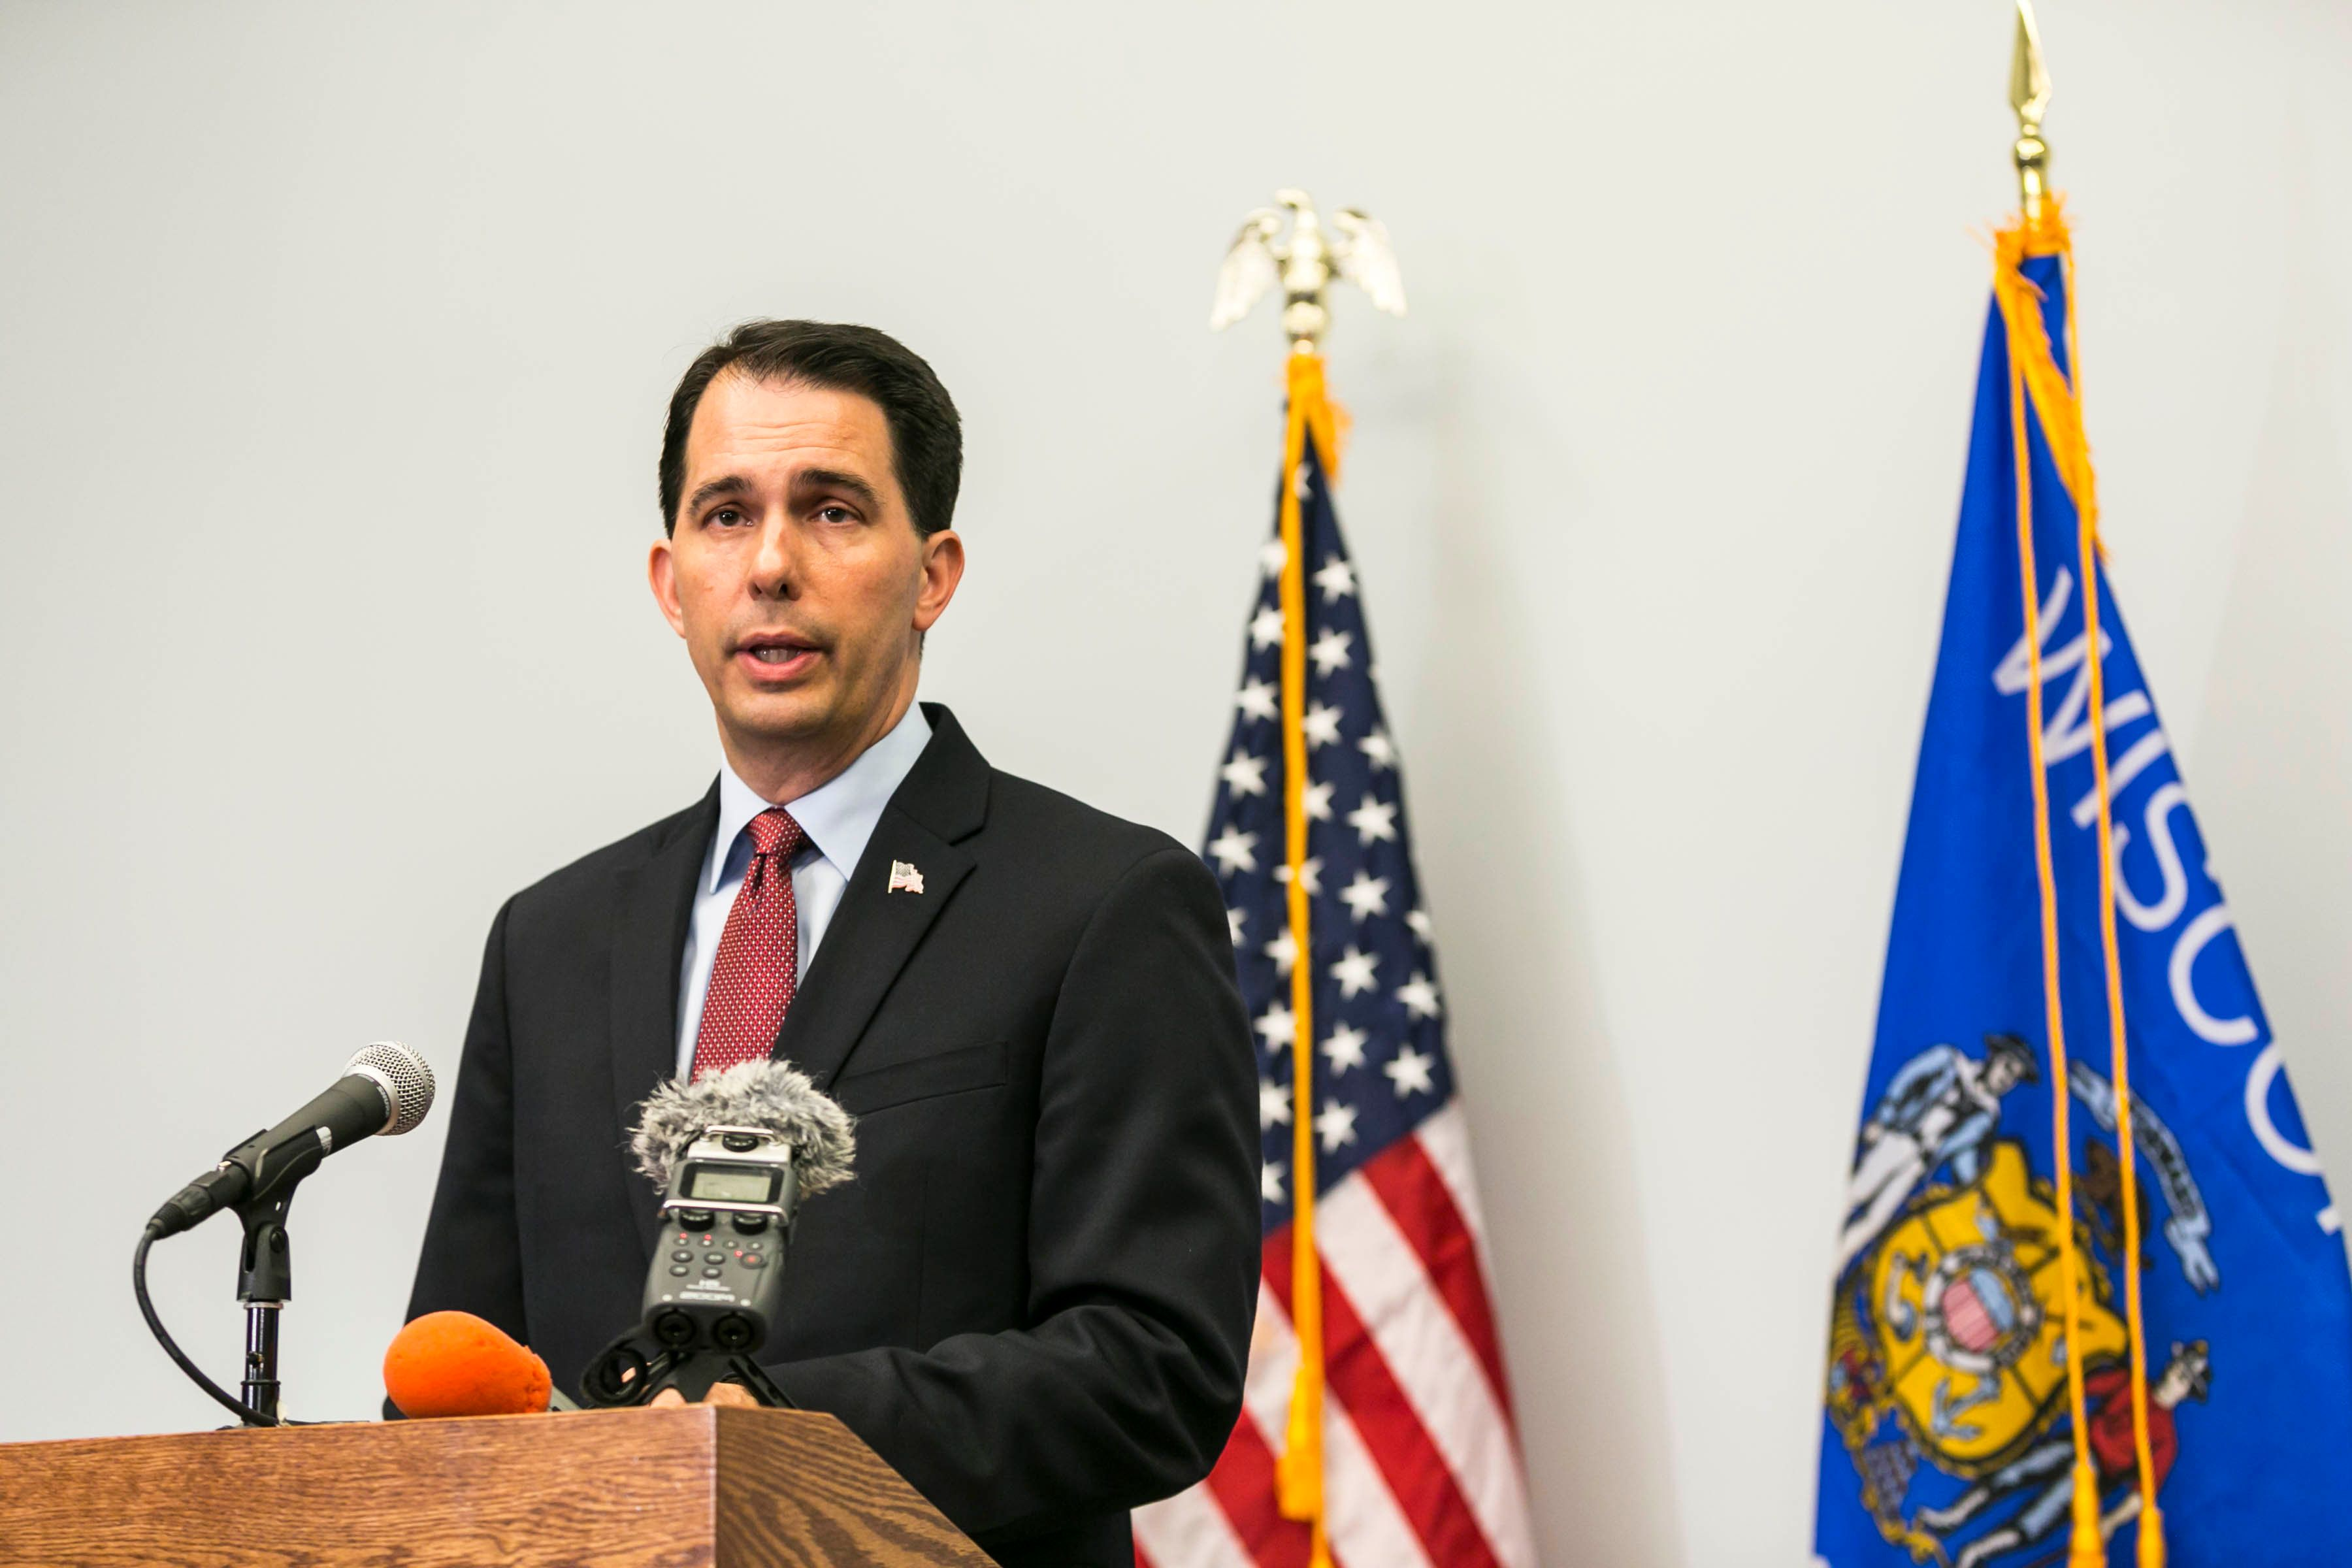 Wisconsin Gov. Scott Walker (R) enacted sweeping changes to elections and campaign finance rules in the state Wednesday.